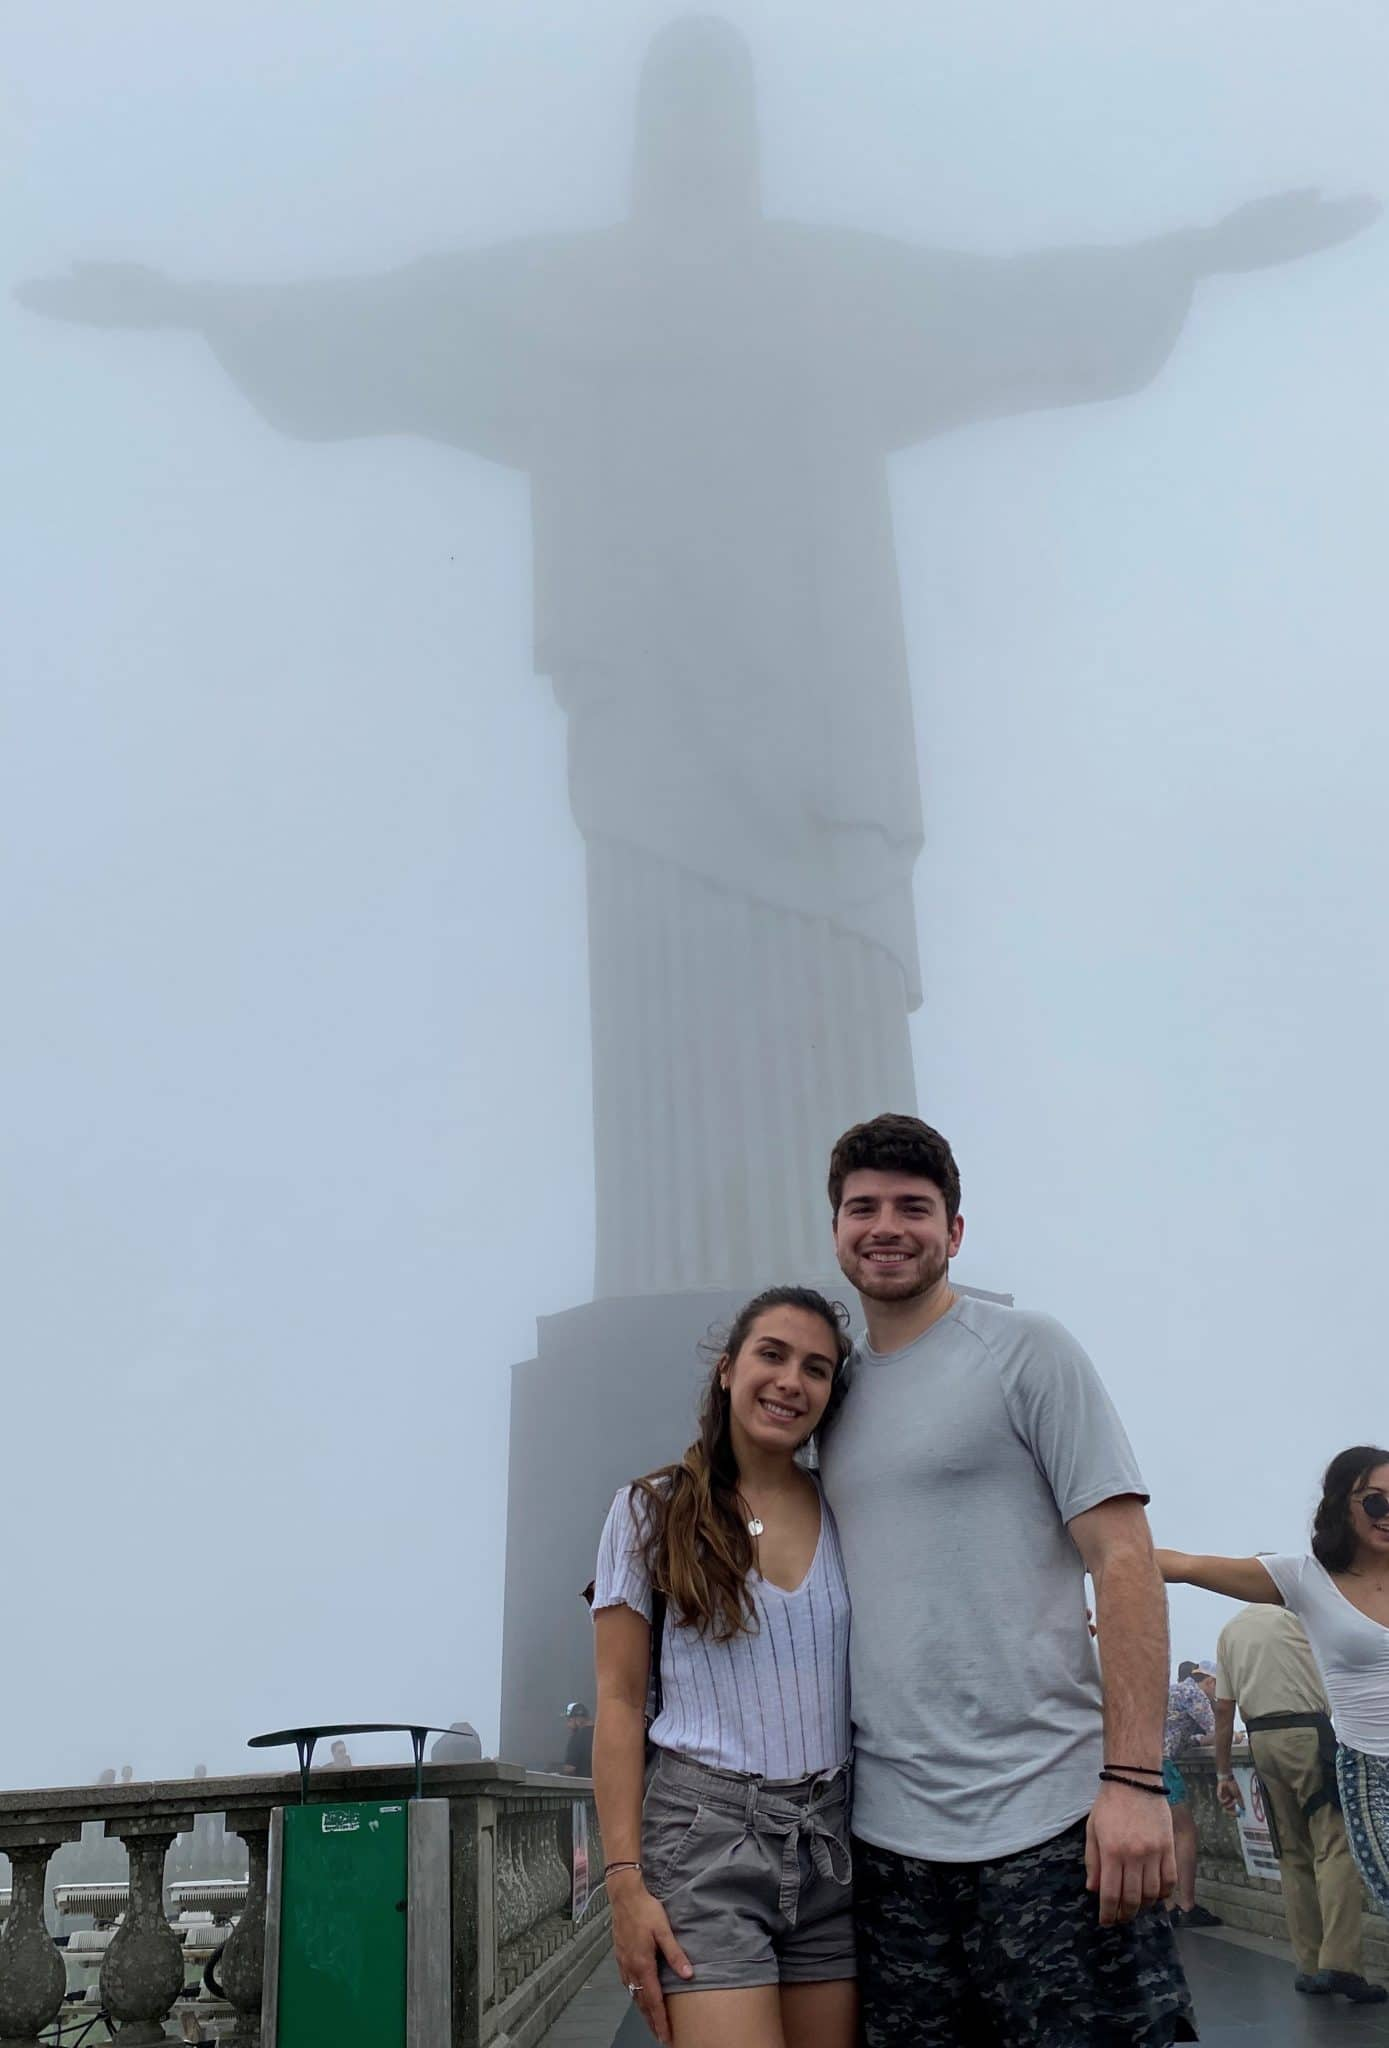 Rocky Cartaya poses in front of the Christ the Redeemer statue in Brazil